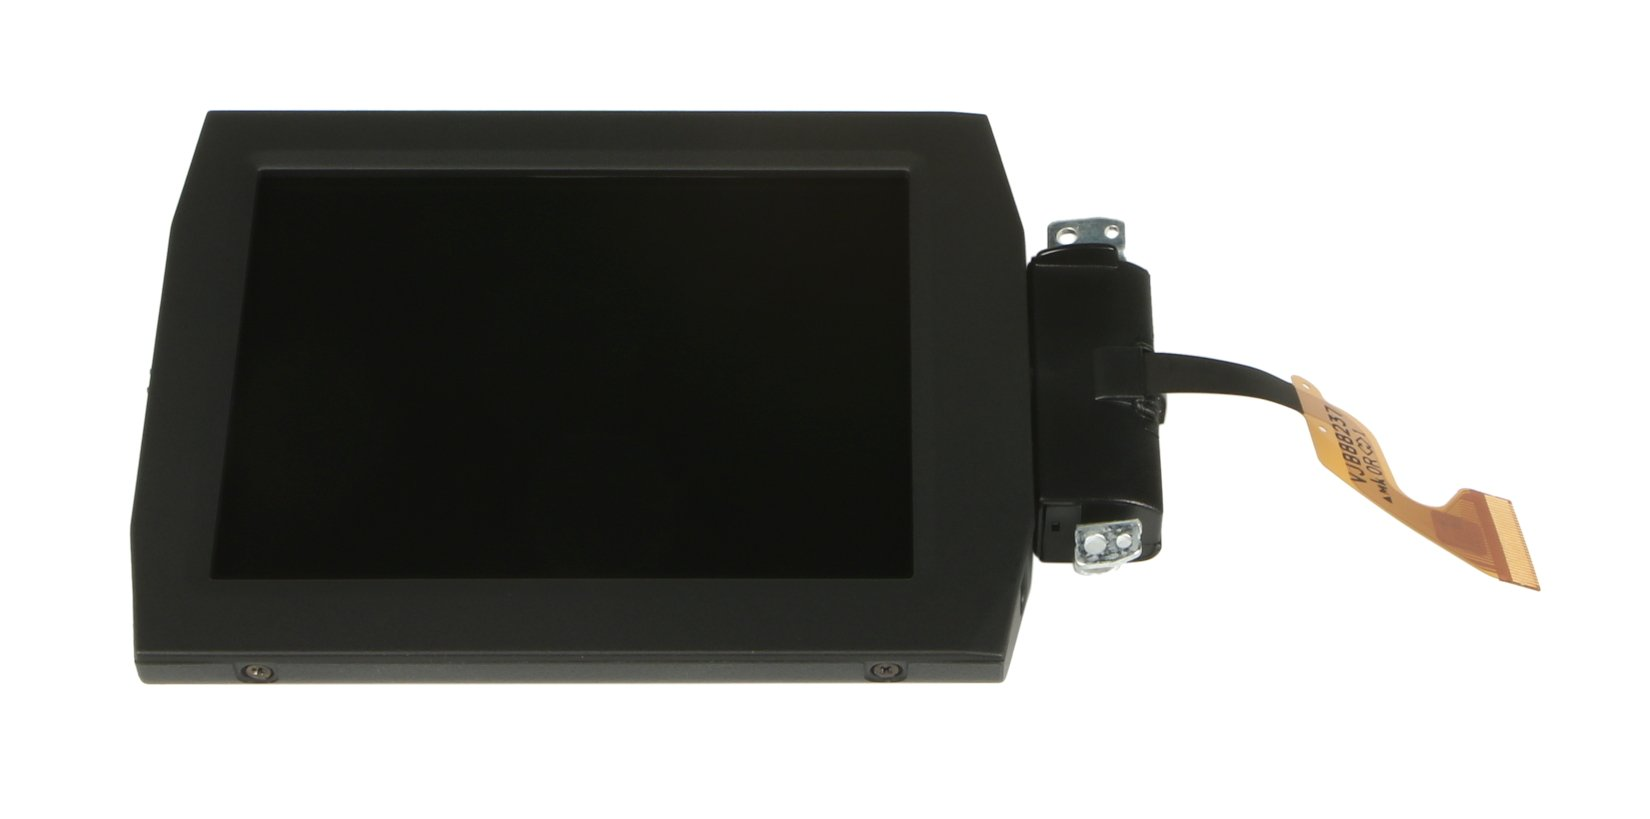 LCD Viewfinder Assembly for AG-HVX200